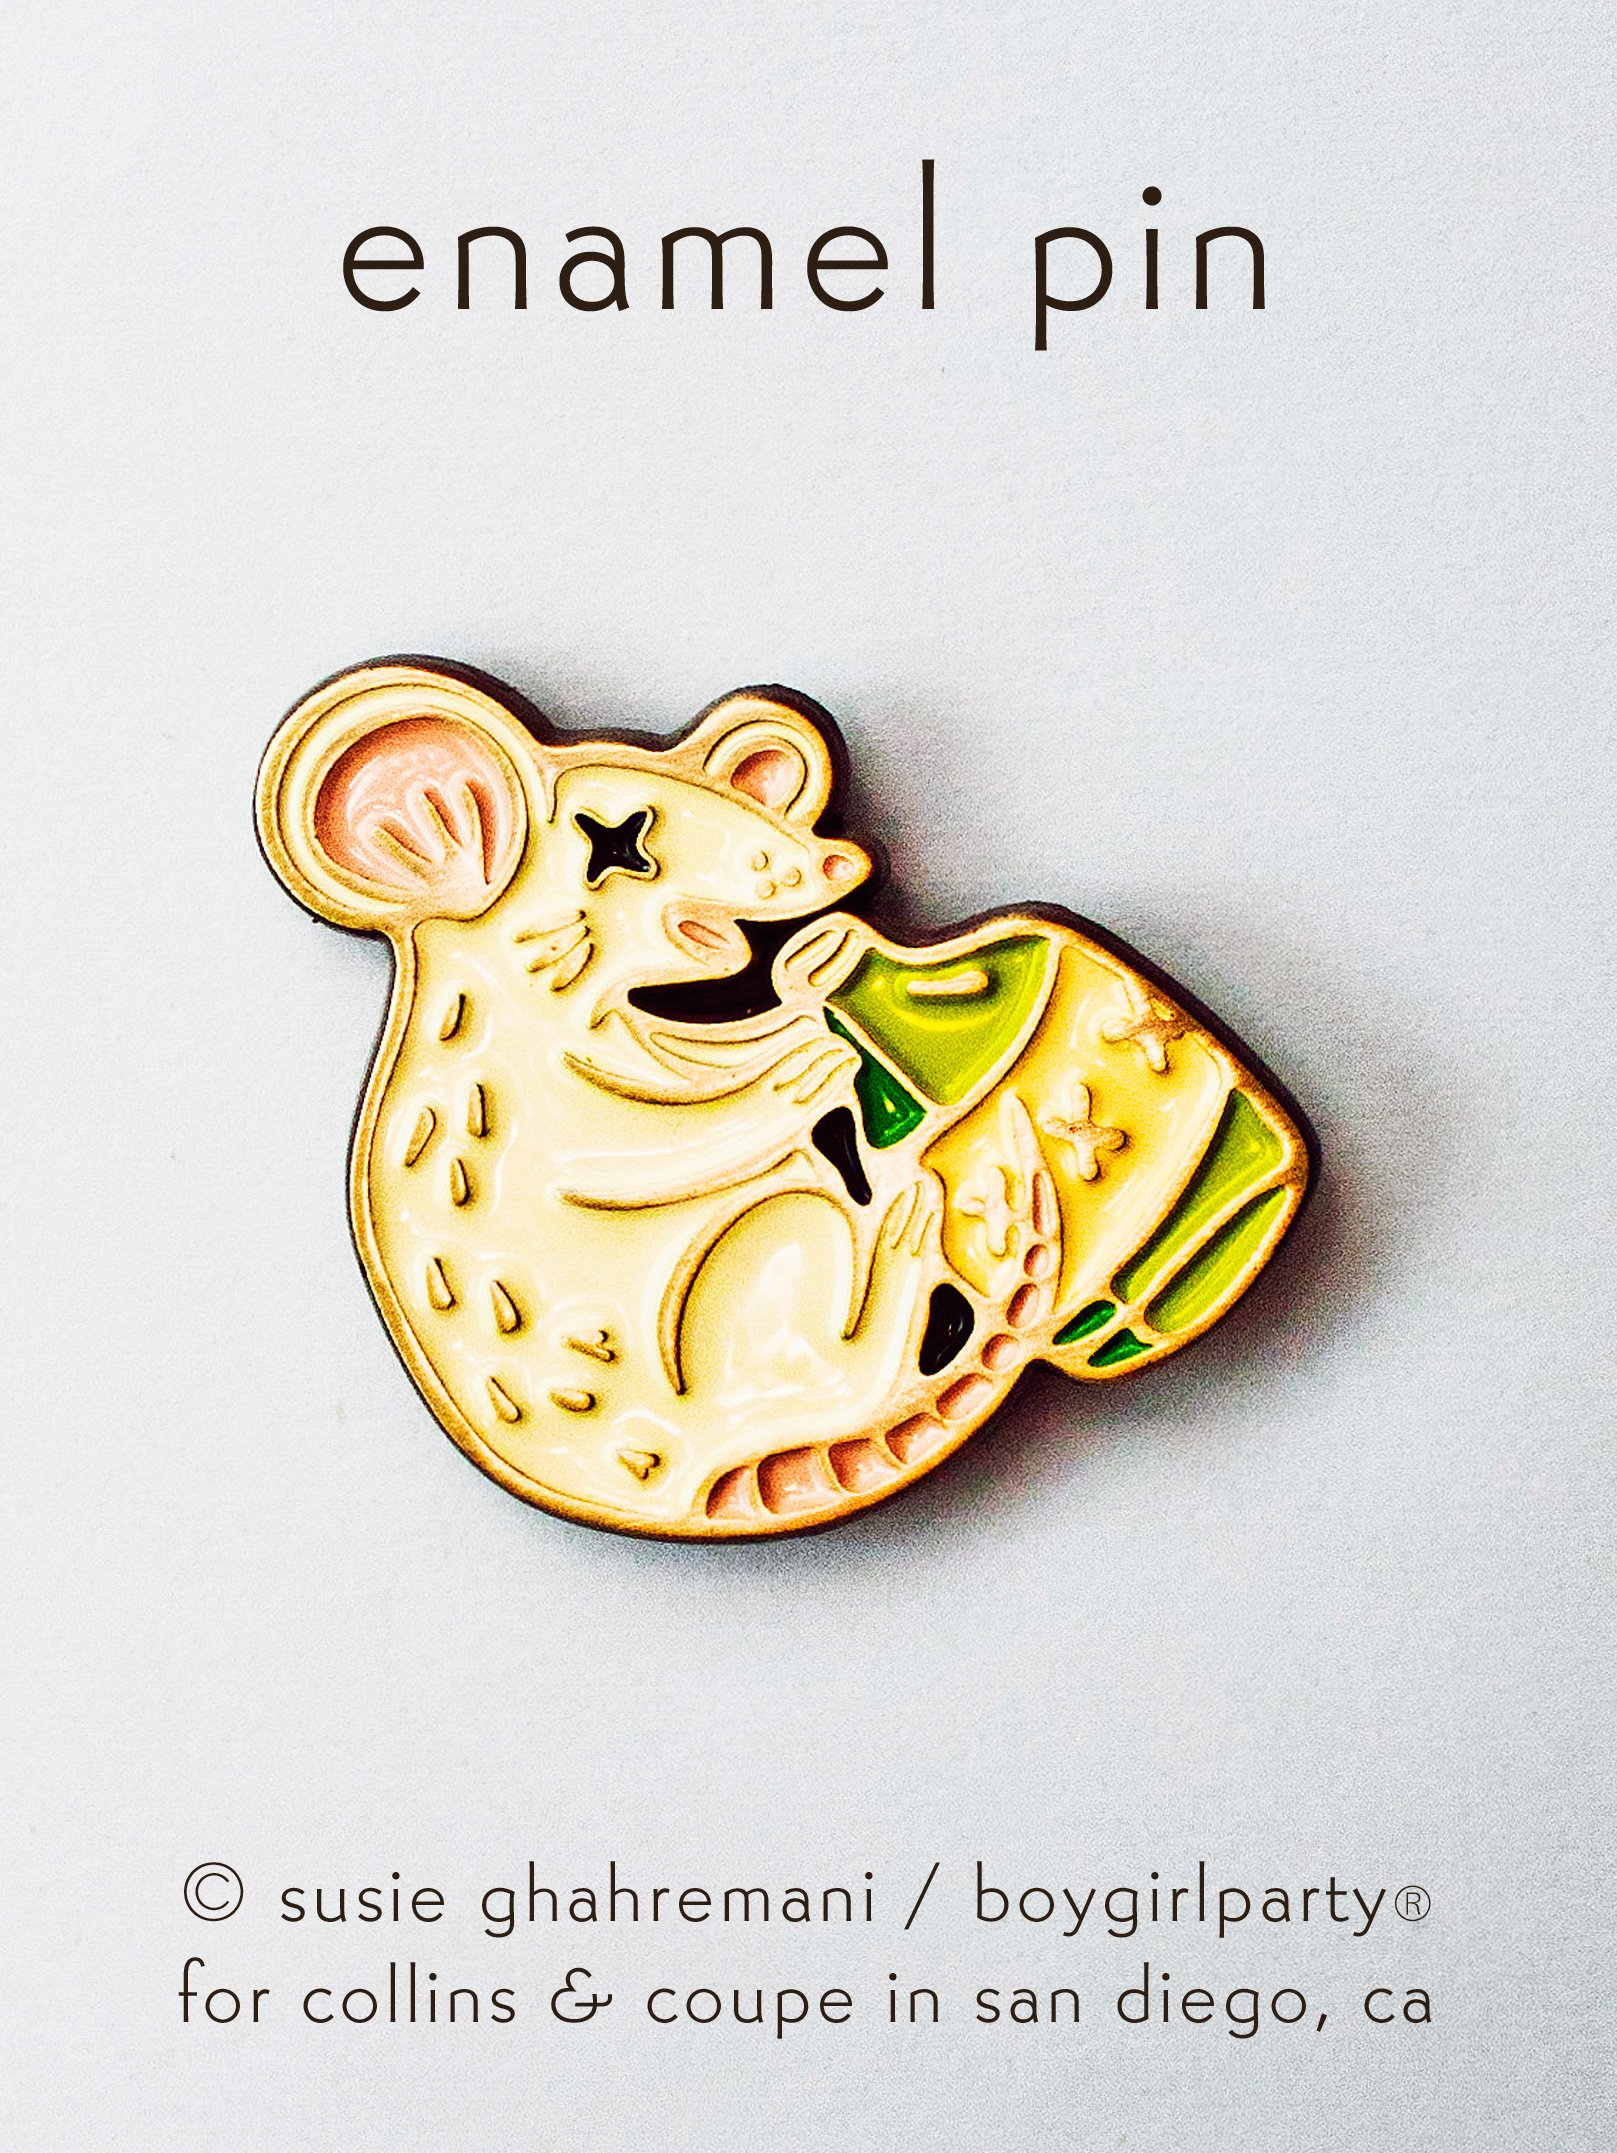 Image of Year of the Rat Pin – Lunar New Year Rat Enamel Pin by boygirlparty for Collins & Coupe